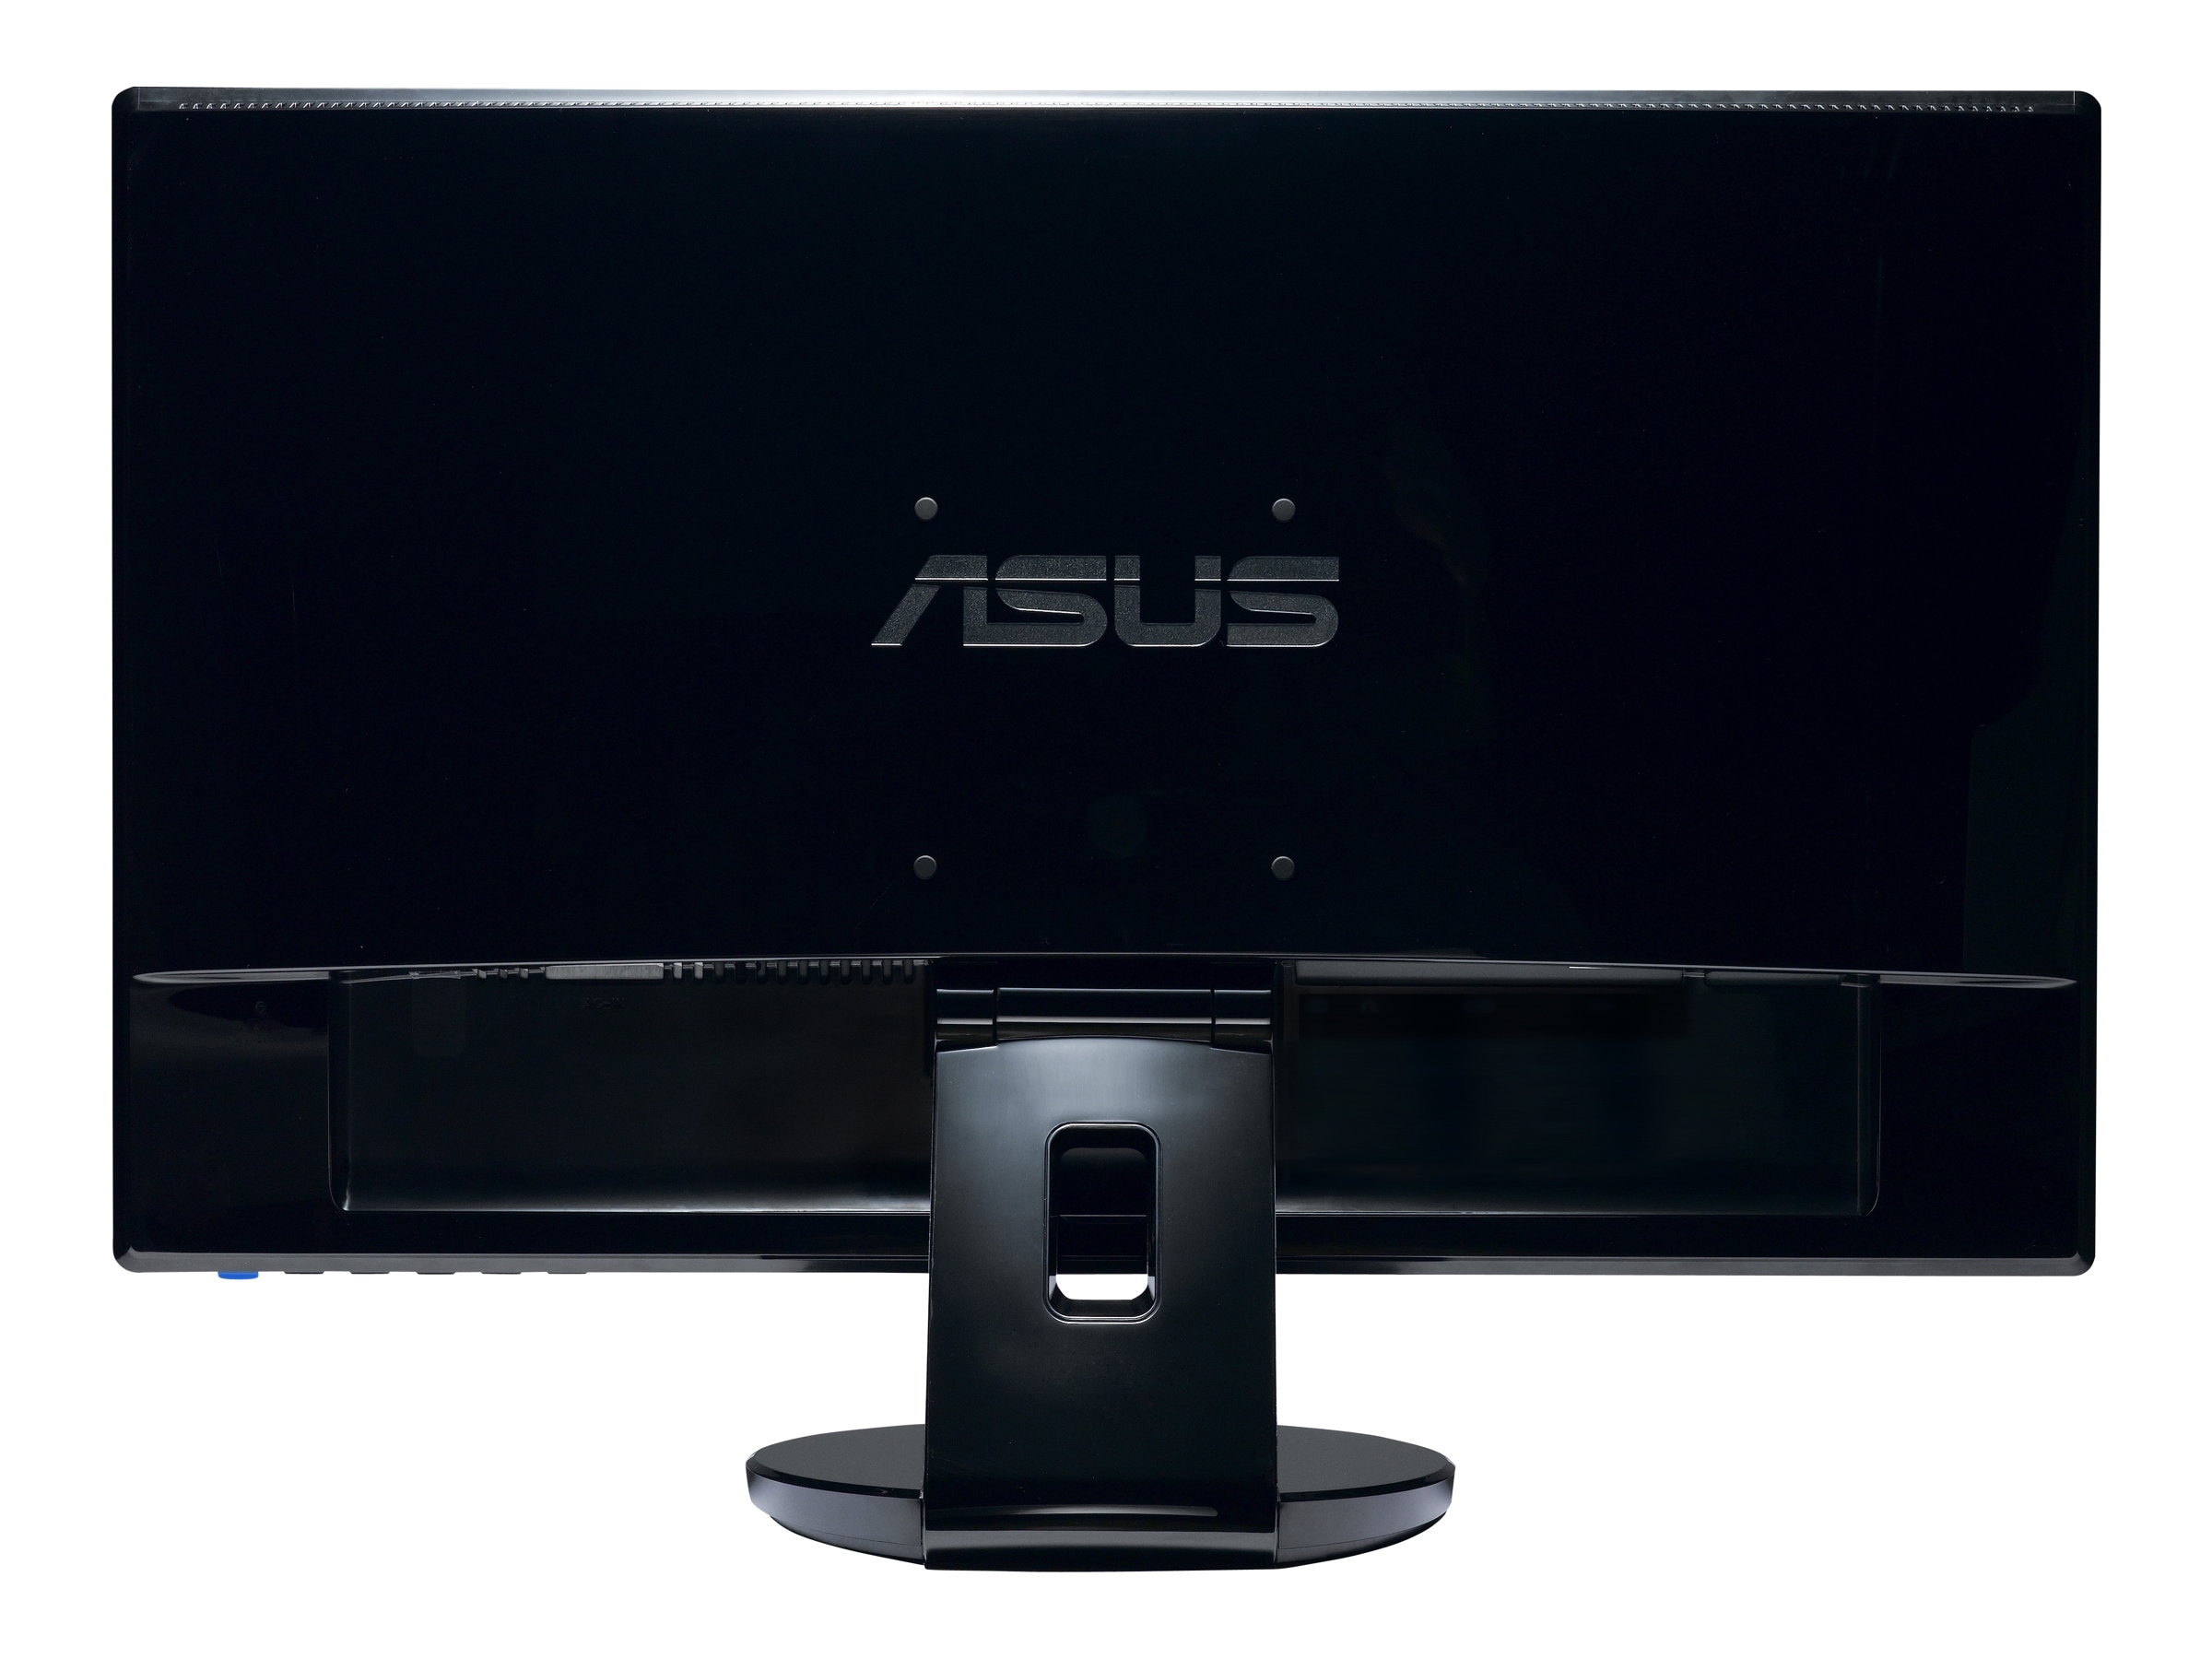 Asus 24 VE248H Full HD Widescreen LED-LCD Monitor, Black, VE248H